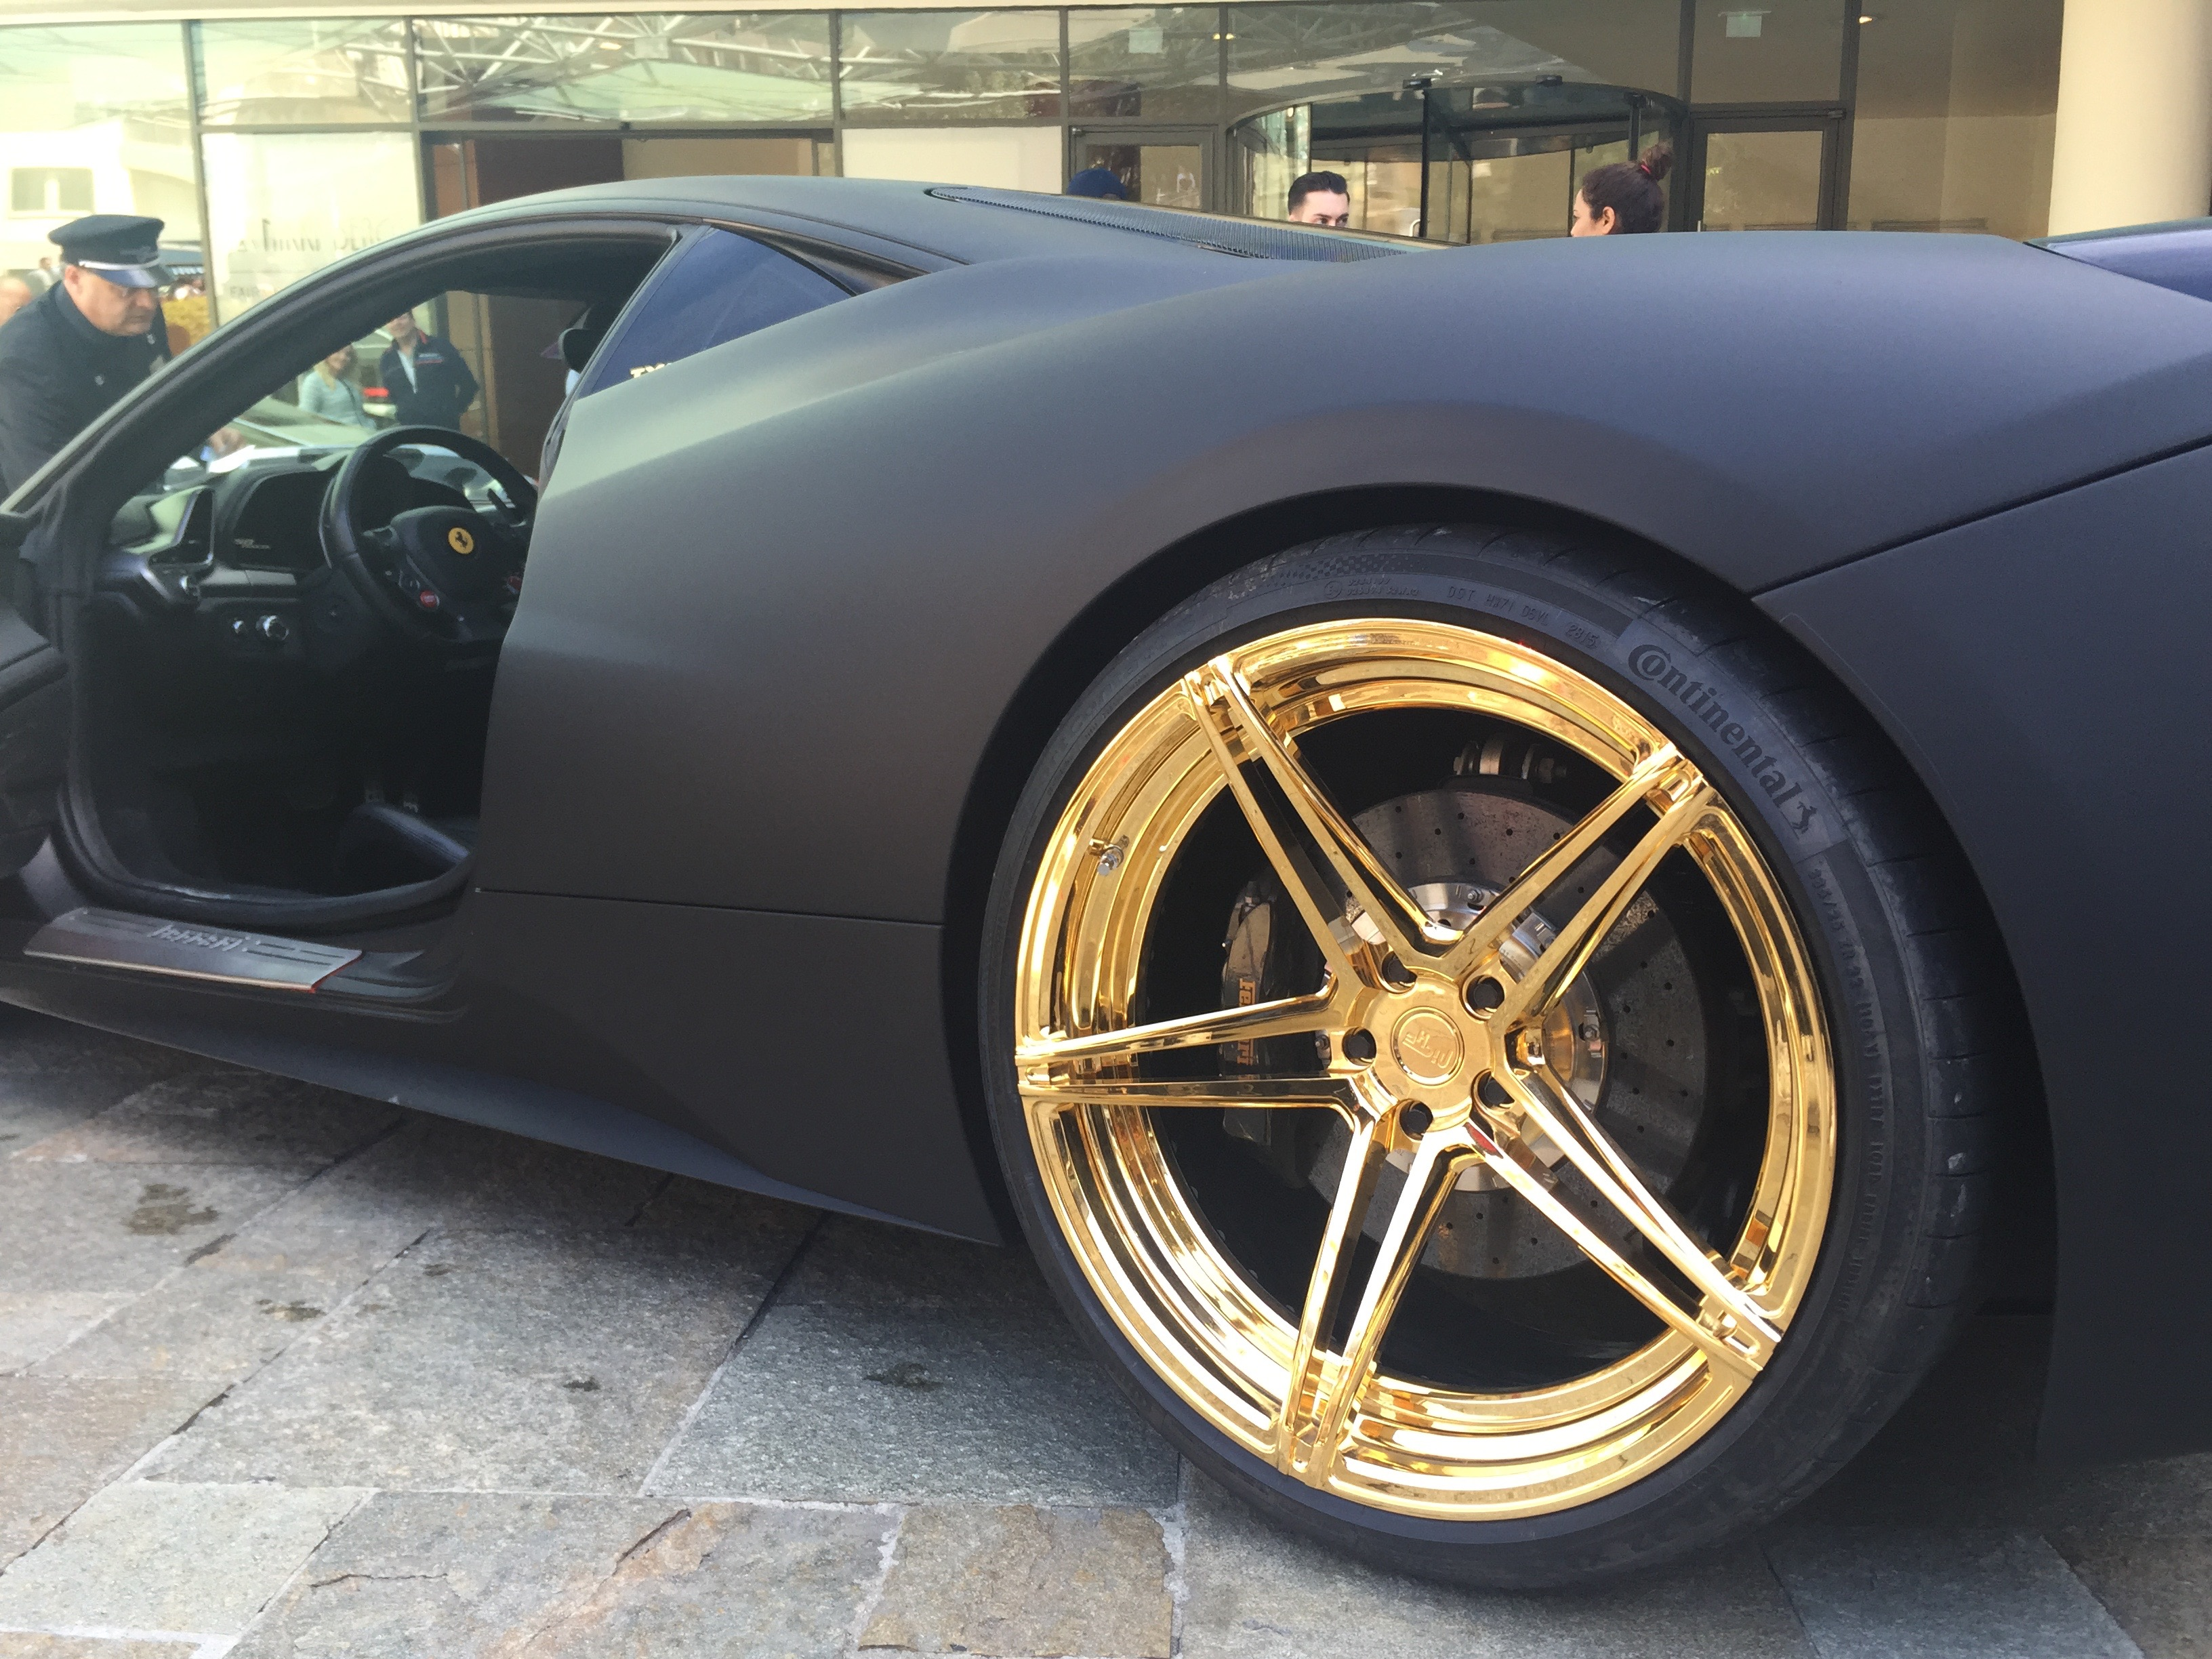 Black And Gold Ferrari 458 In Monaco – Amazing BLING!